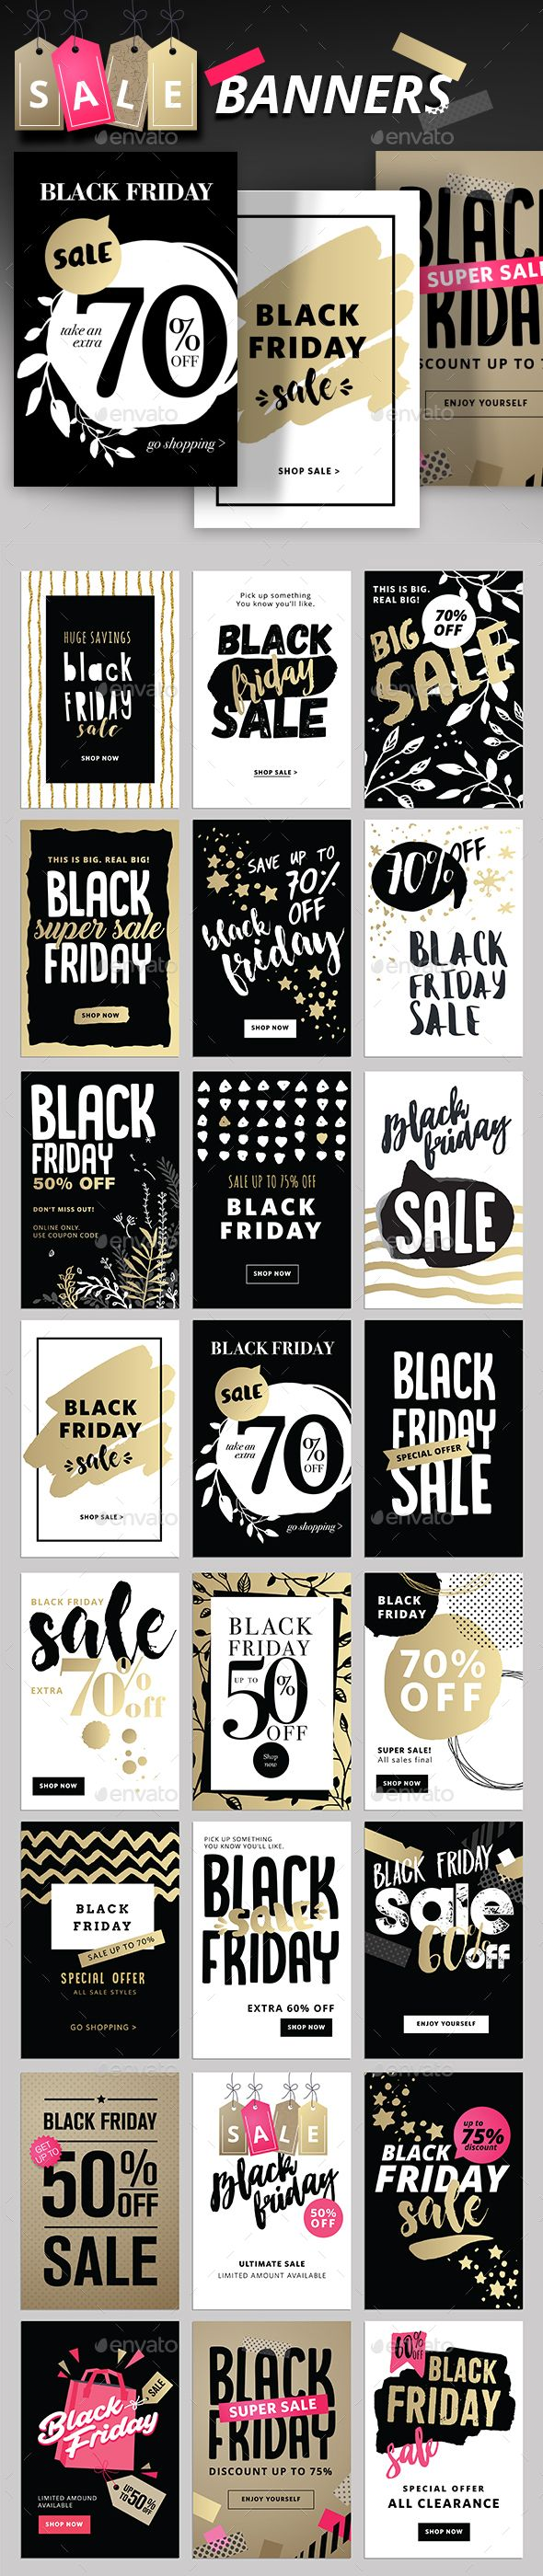 Black Friday Social Media Banners Template PSD, Transparent PNG ...